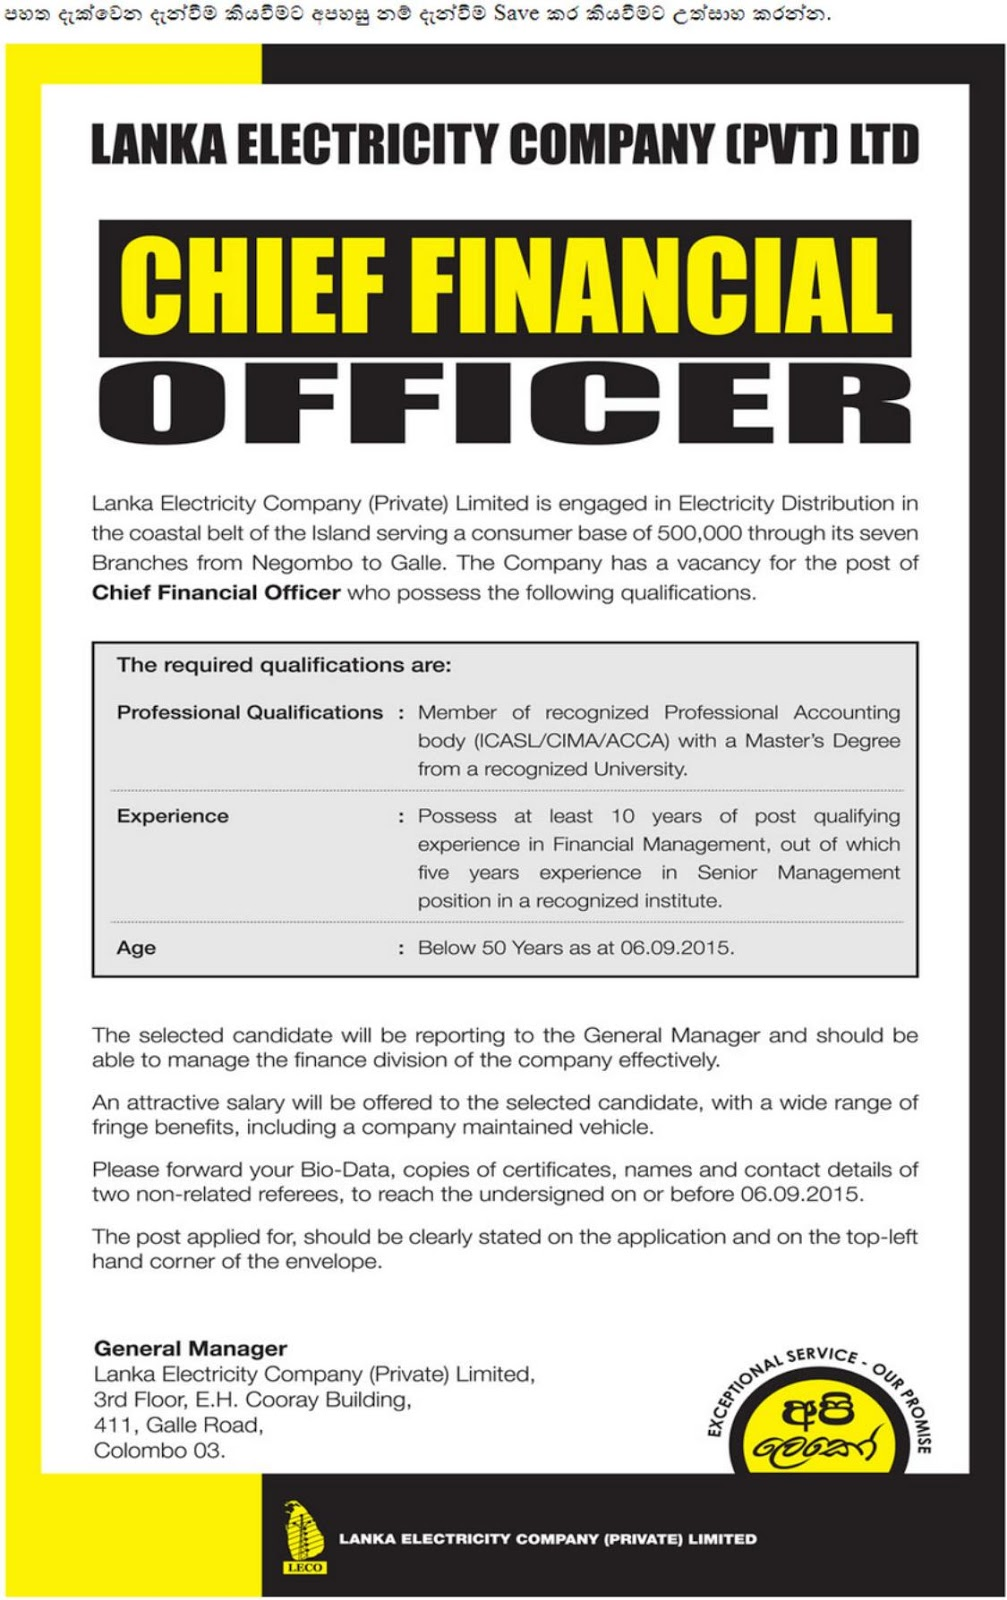 Chief financial officer leco - Chief financial officer cfo ...